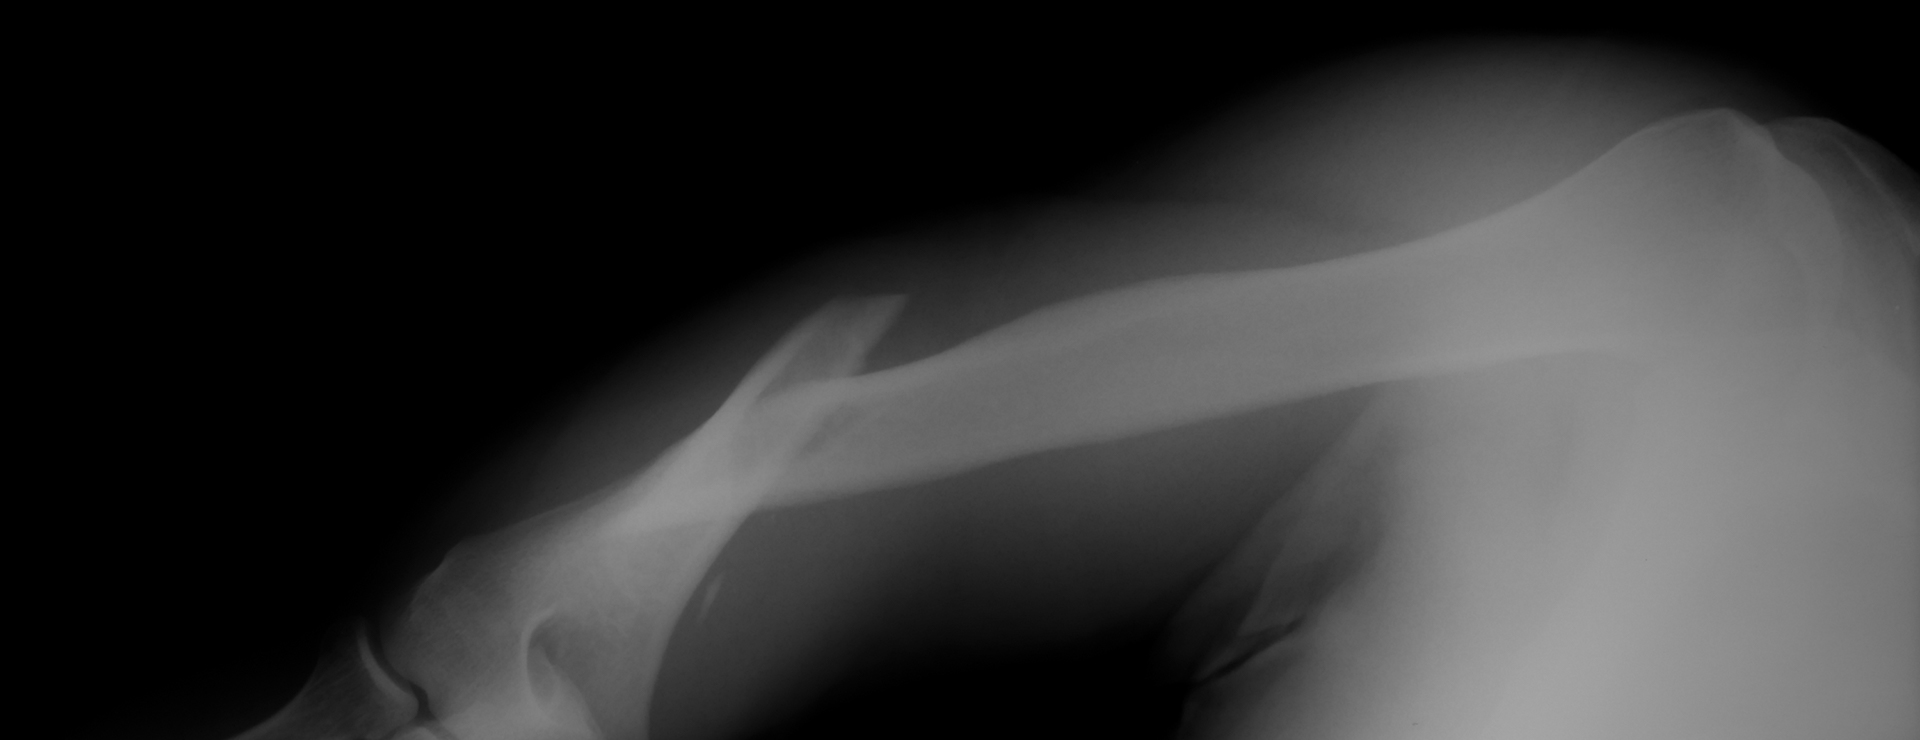 X-ray of a humerus fracture